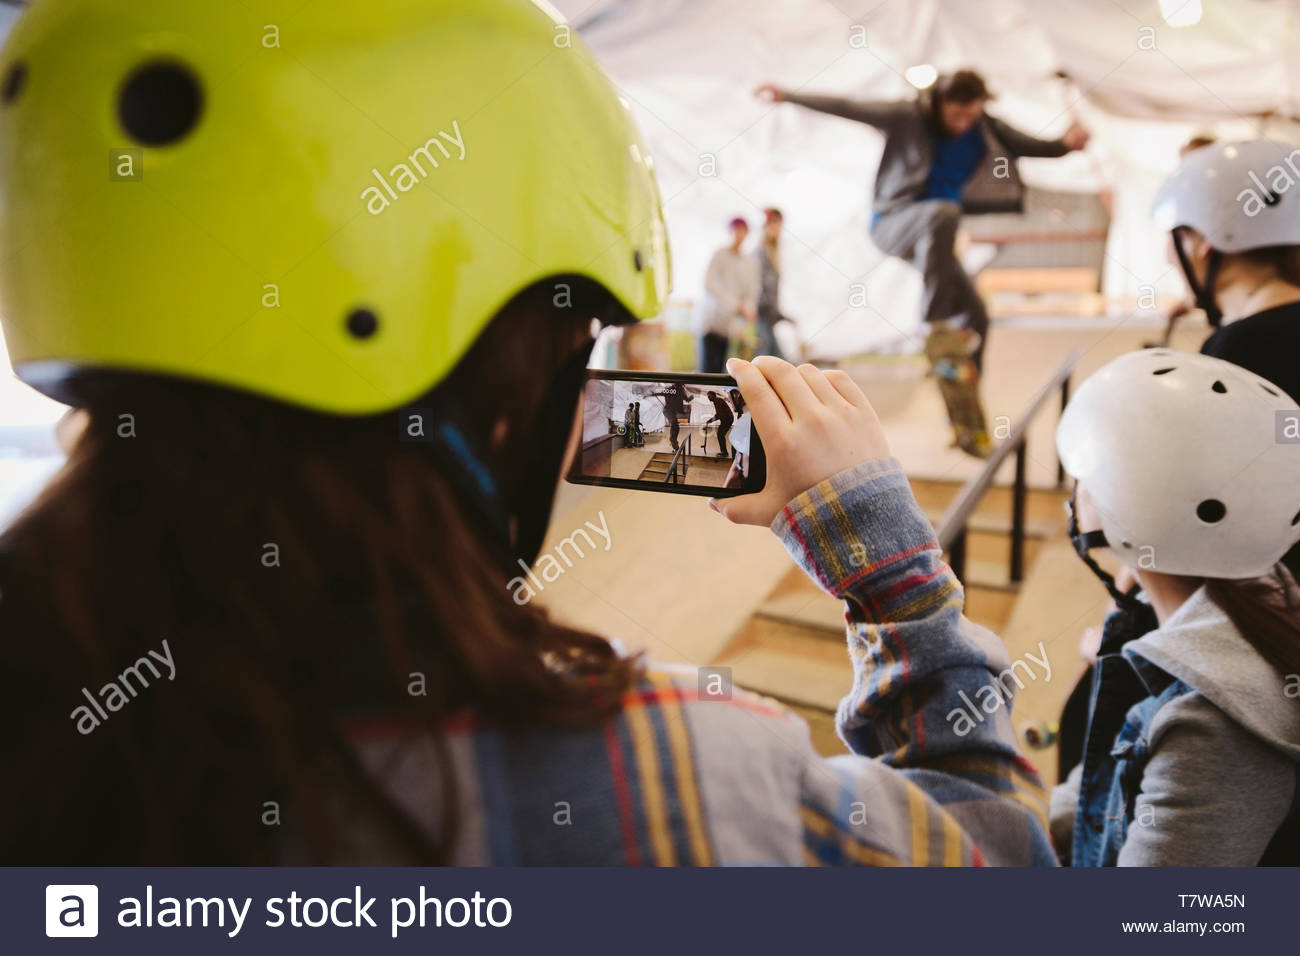 Boy with camera phone filming man skateboarding at indoor skate park - Stock Image